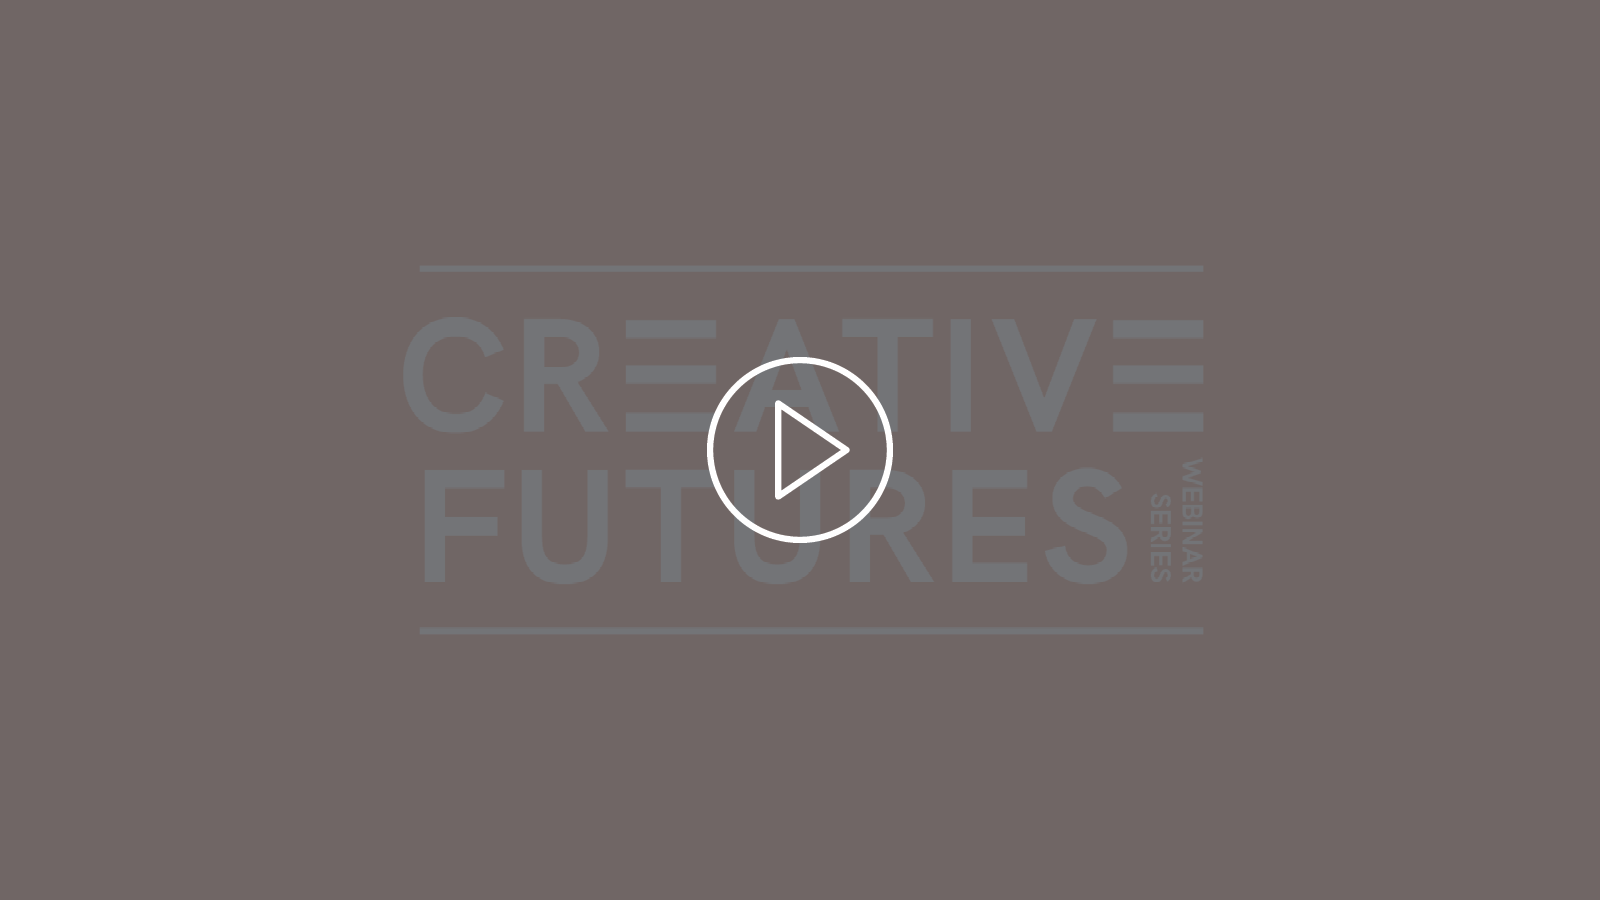 webinar-covers-creativefutures